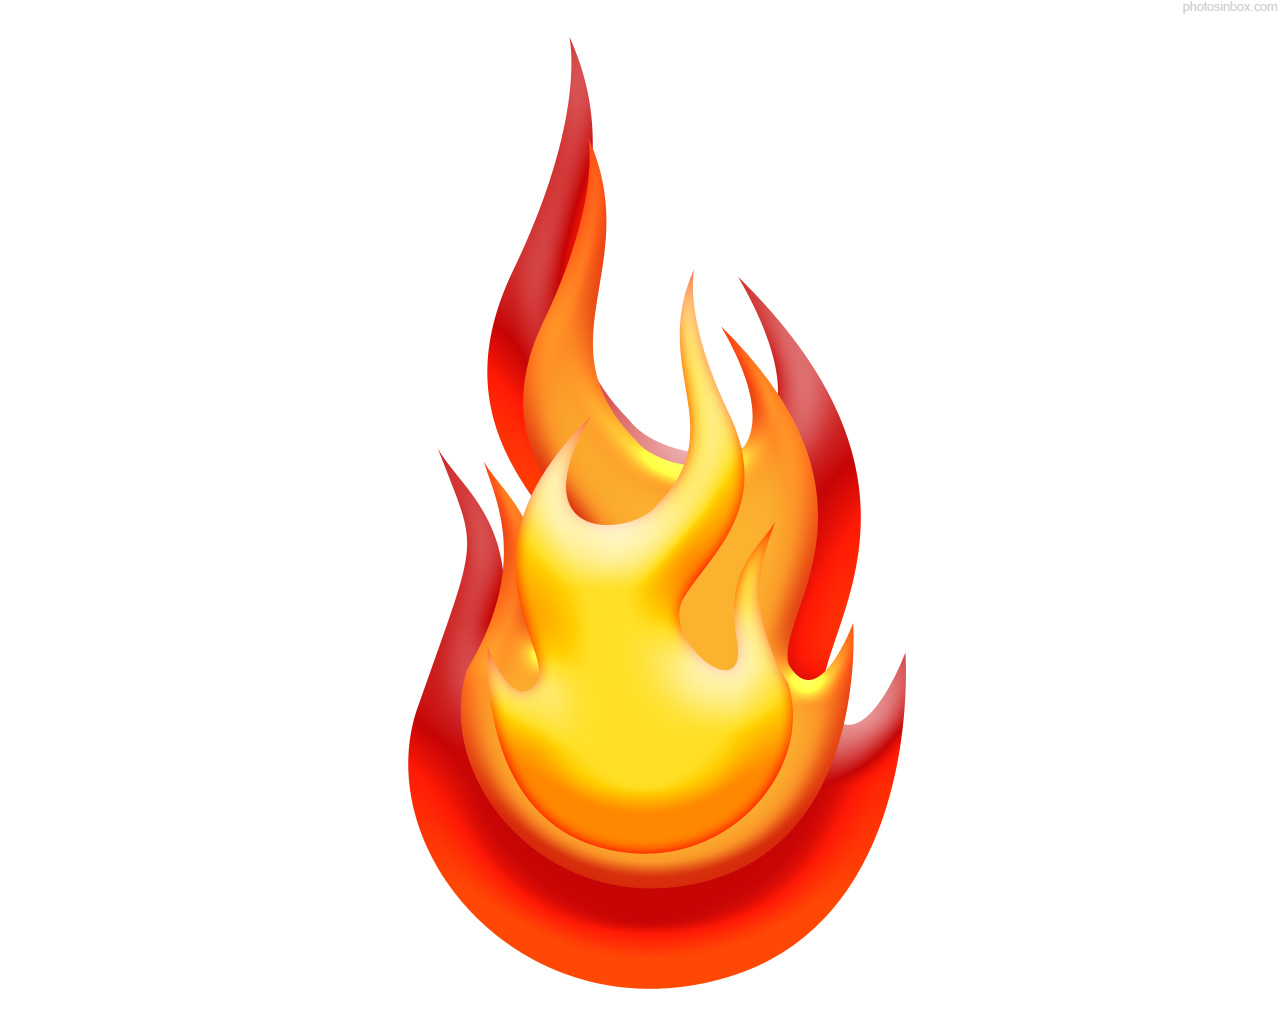 1280x1024 Fire Flame Clipart Border Free Clipart Images